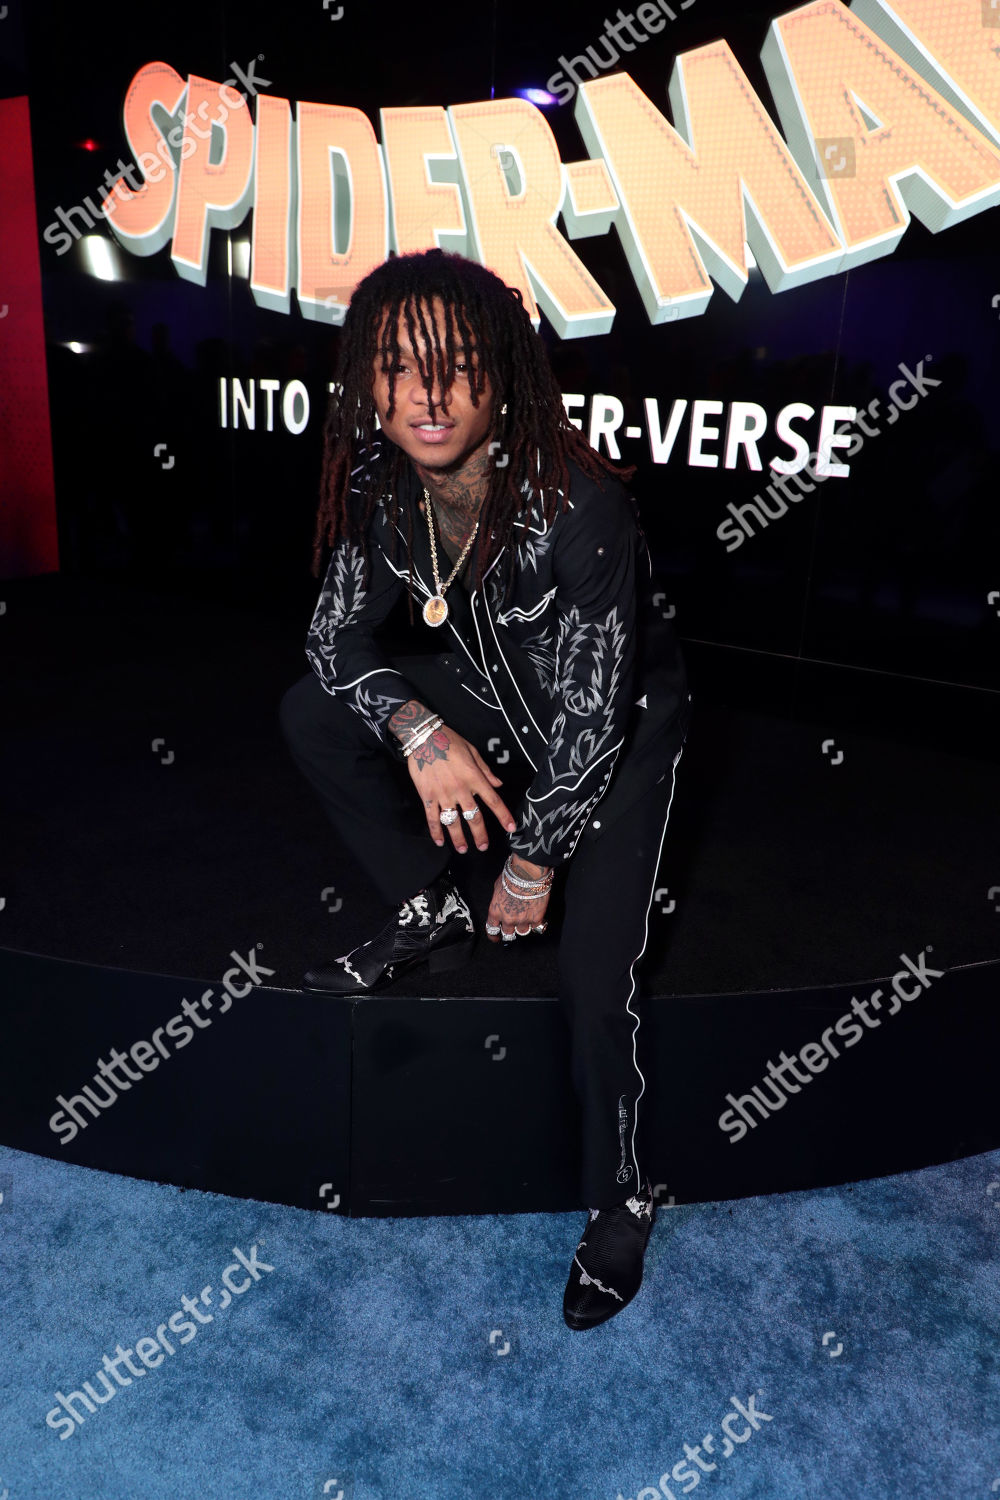 swae lee during red carpet premiere columbia stock photo 10011152dm